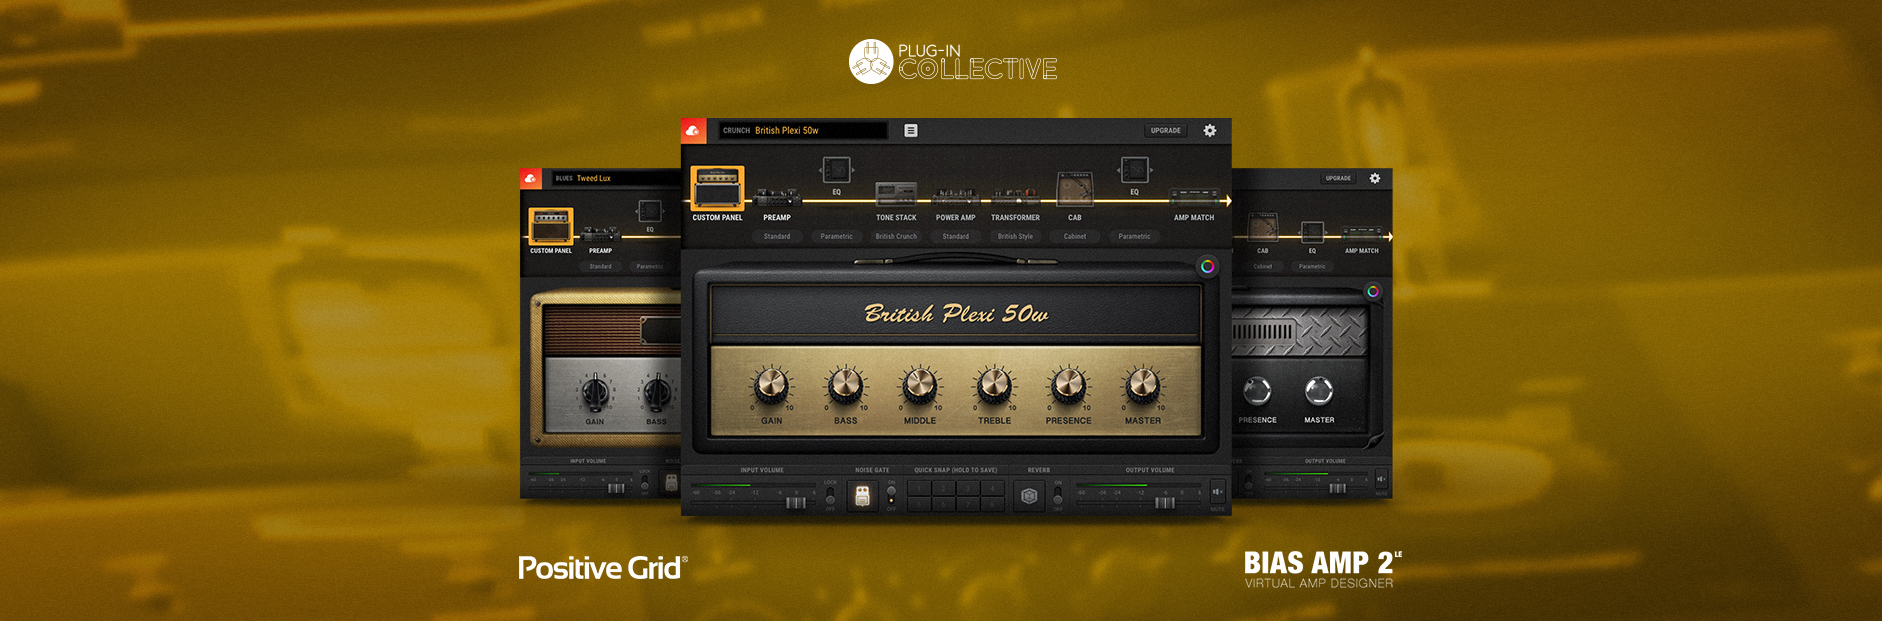 BIAS AMP 2/Focusrite | Plugin Collective